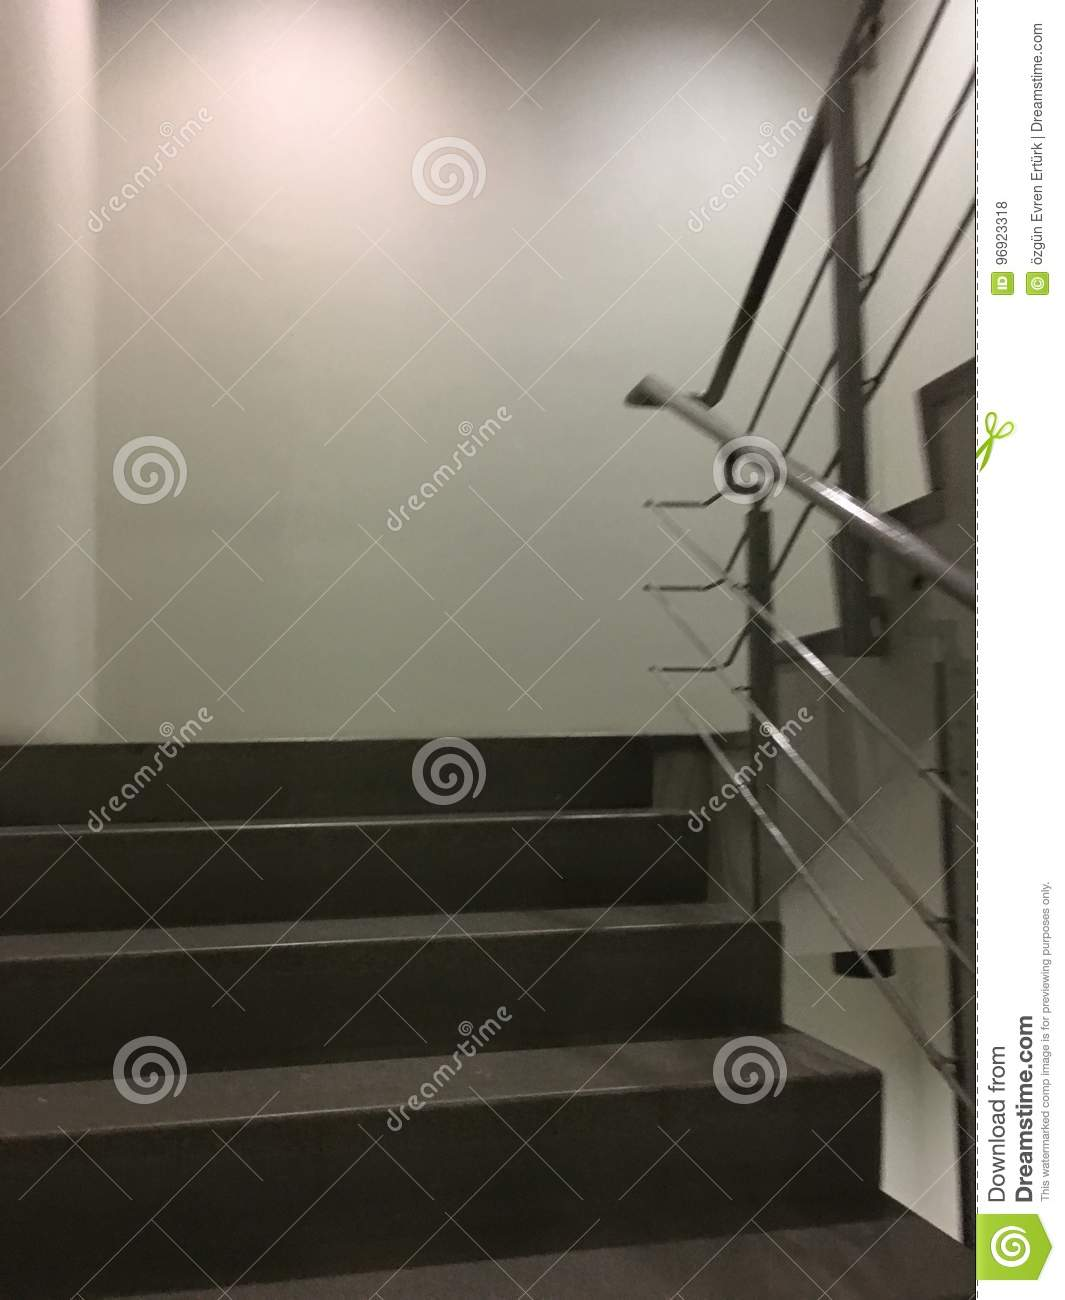 Download Stairs Ladder Staircase Steps Stock Photo   Image Of Graphic,  Ambition: 96923318